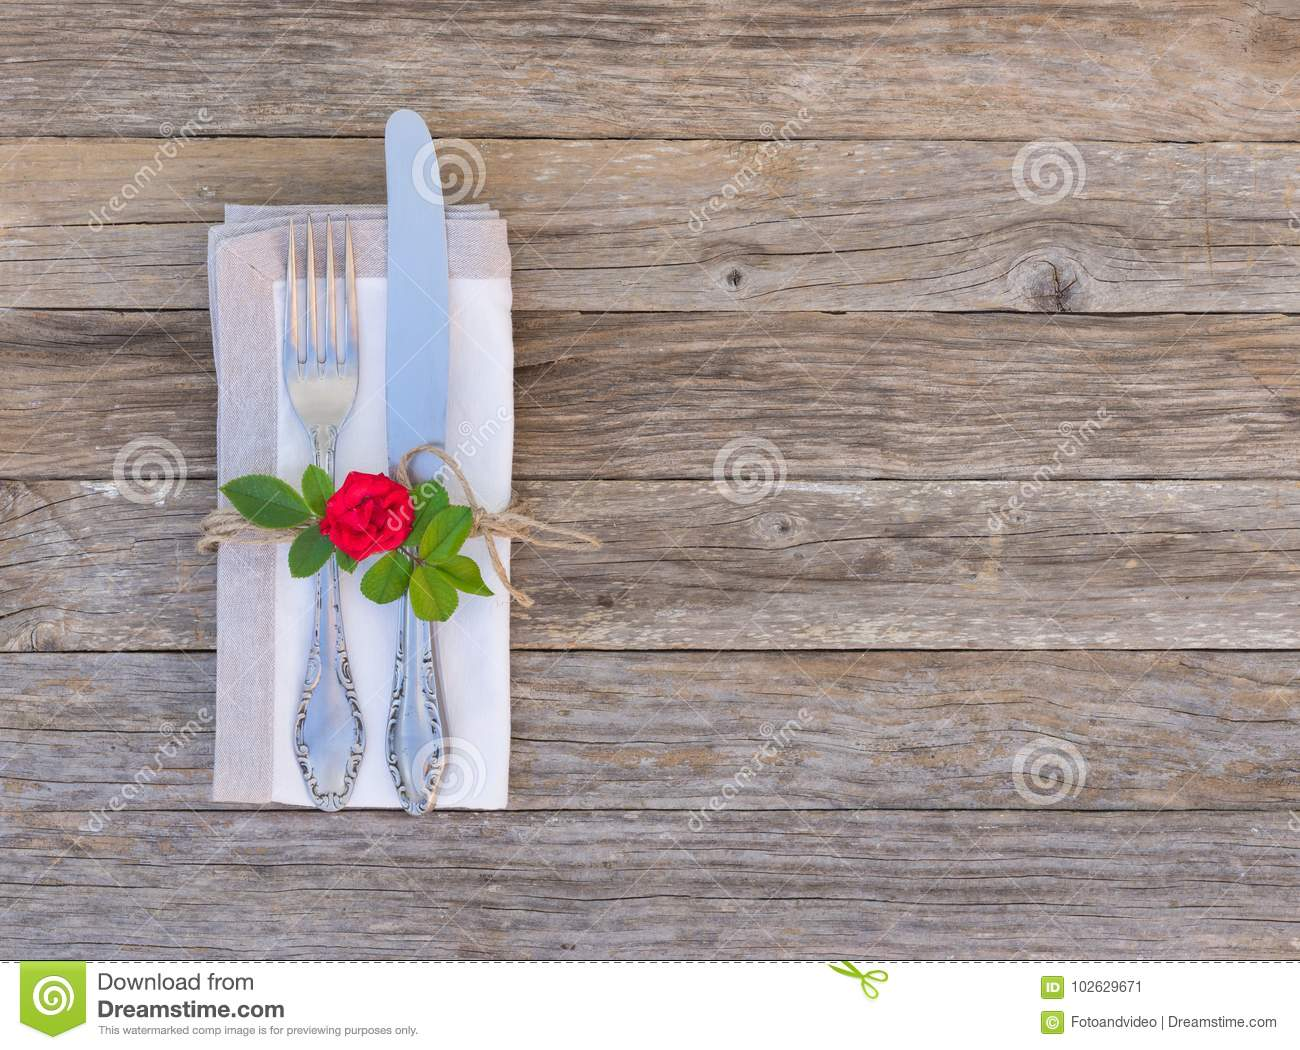 Romantic Dinner Concept Table Setting With Cutlery And Red Rose